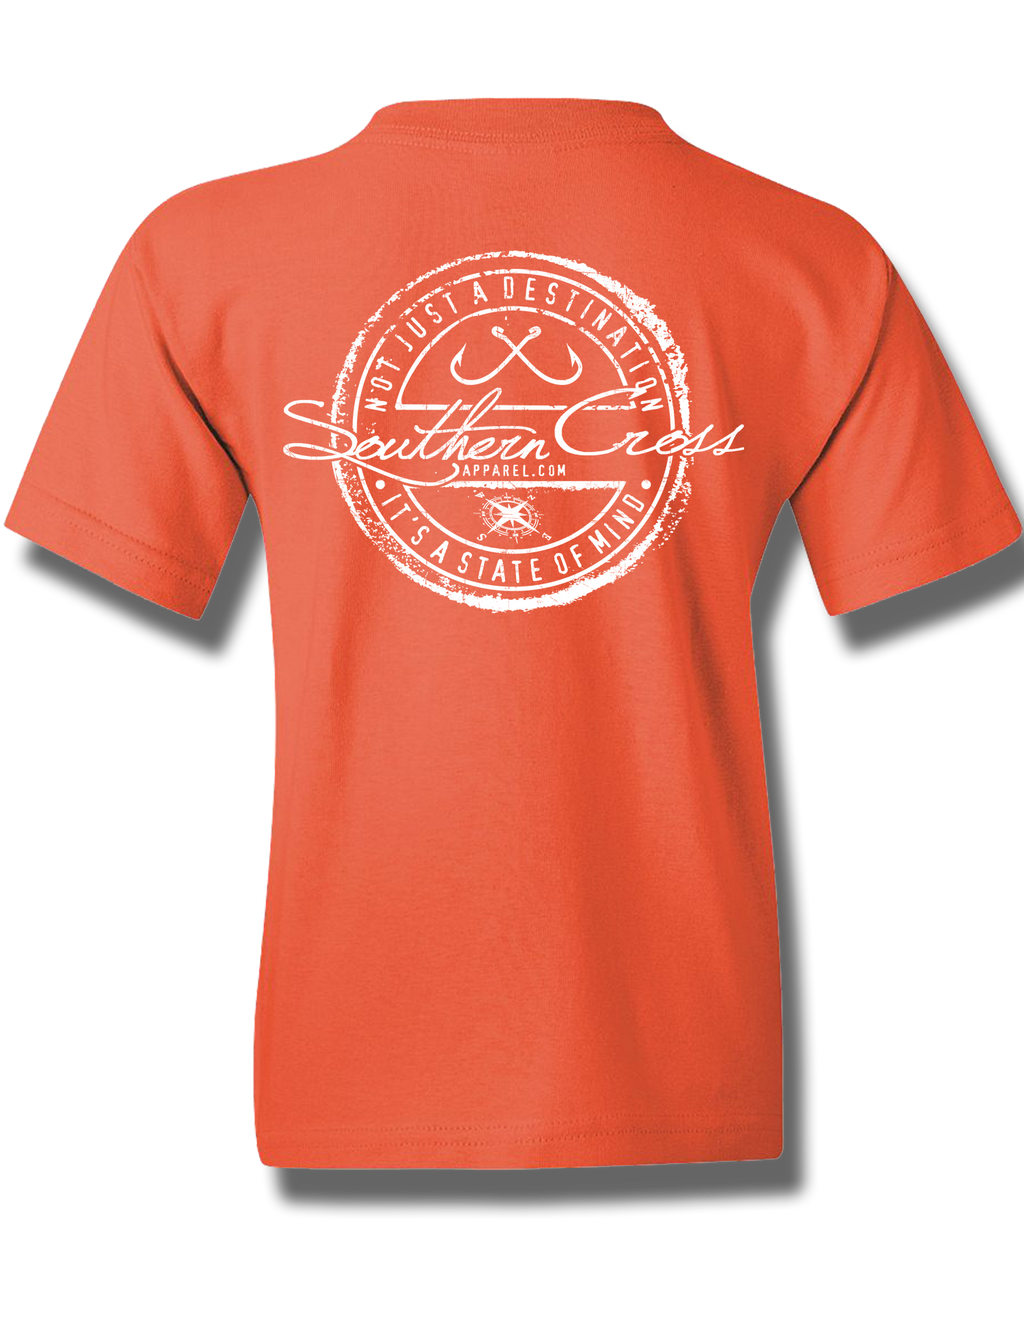 Fishing Stamp Coral Silk Youth Short Sleeve XS, T-Shirt - Southern Cross Apparel